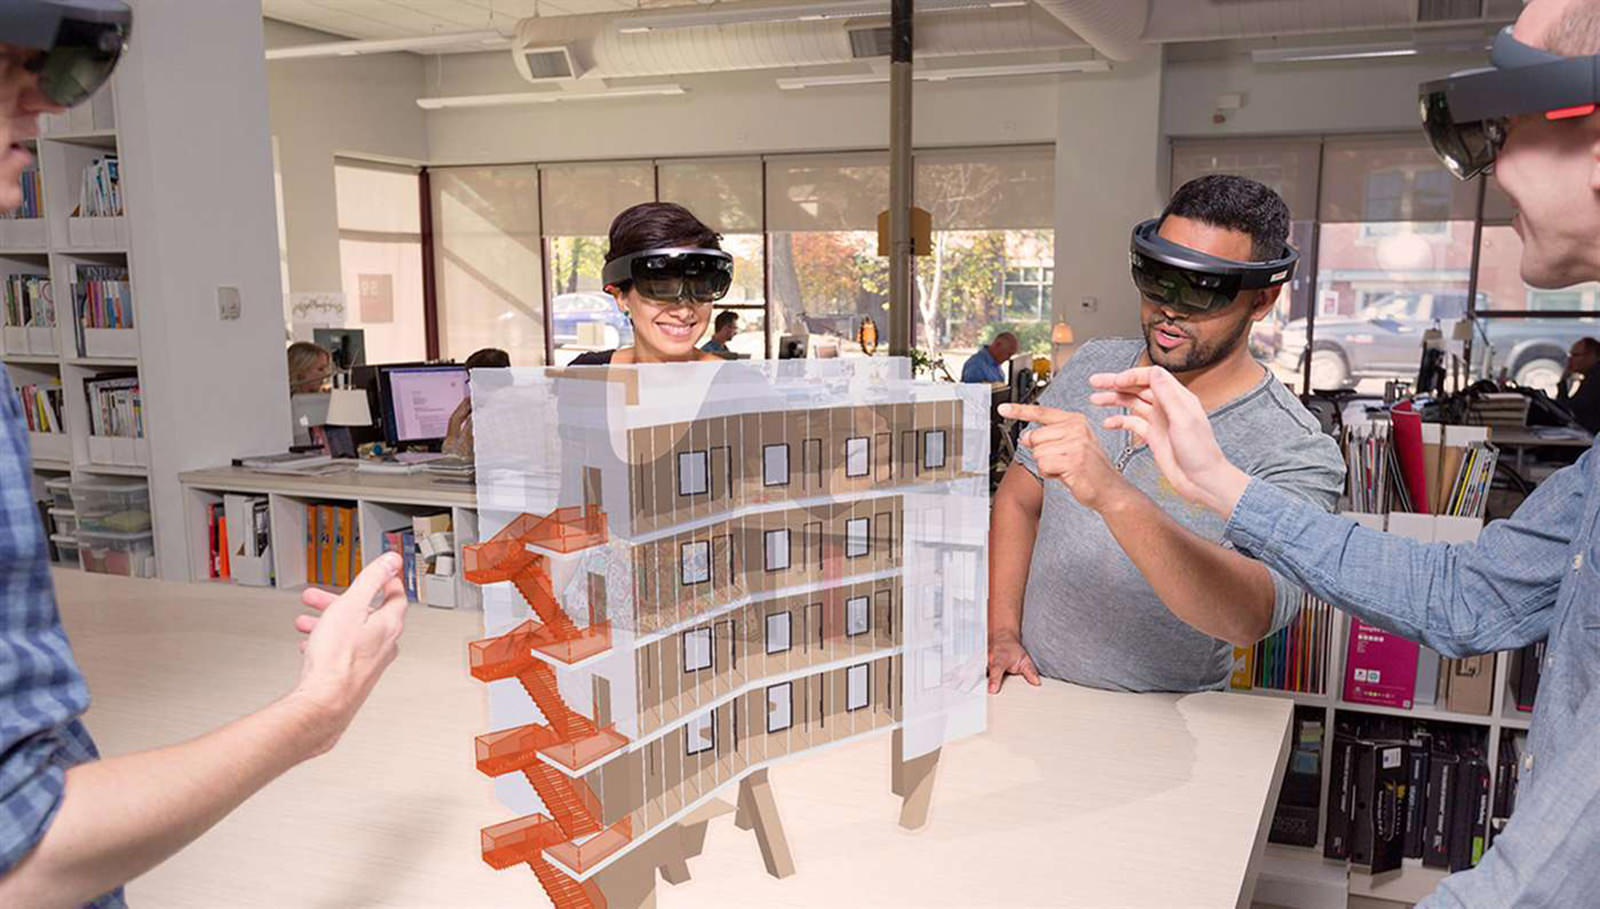 How Augmented Reality Services Are Impacting The Architectural Visualization Industry